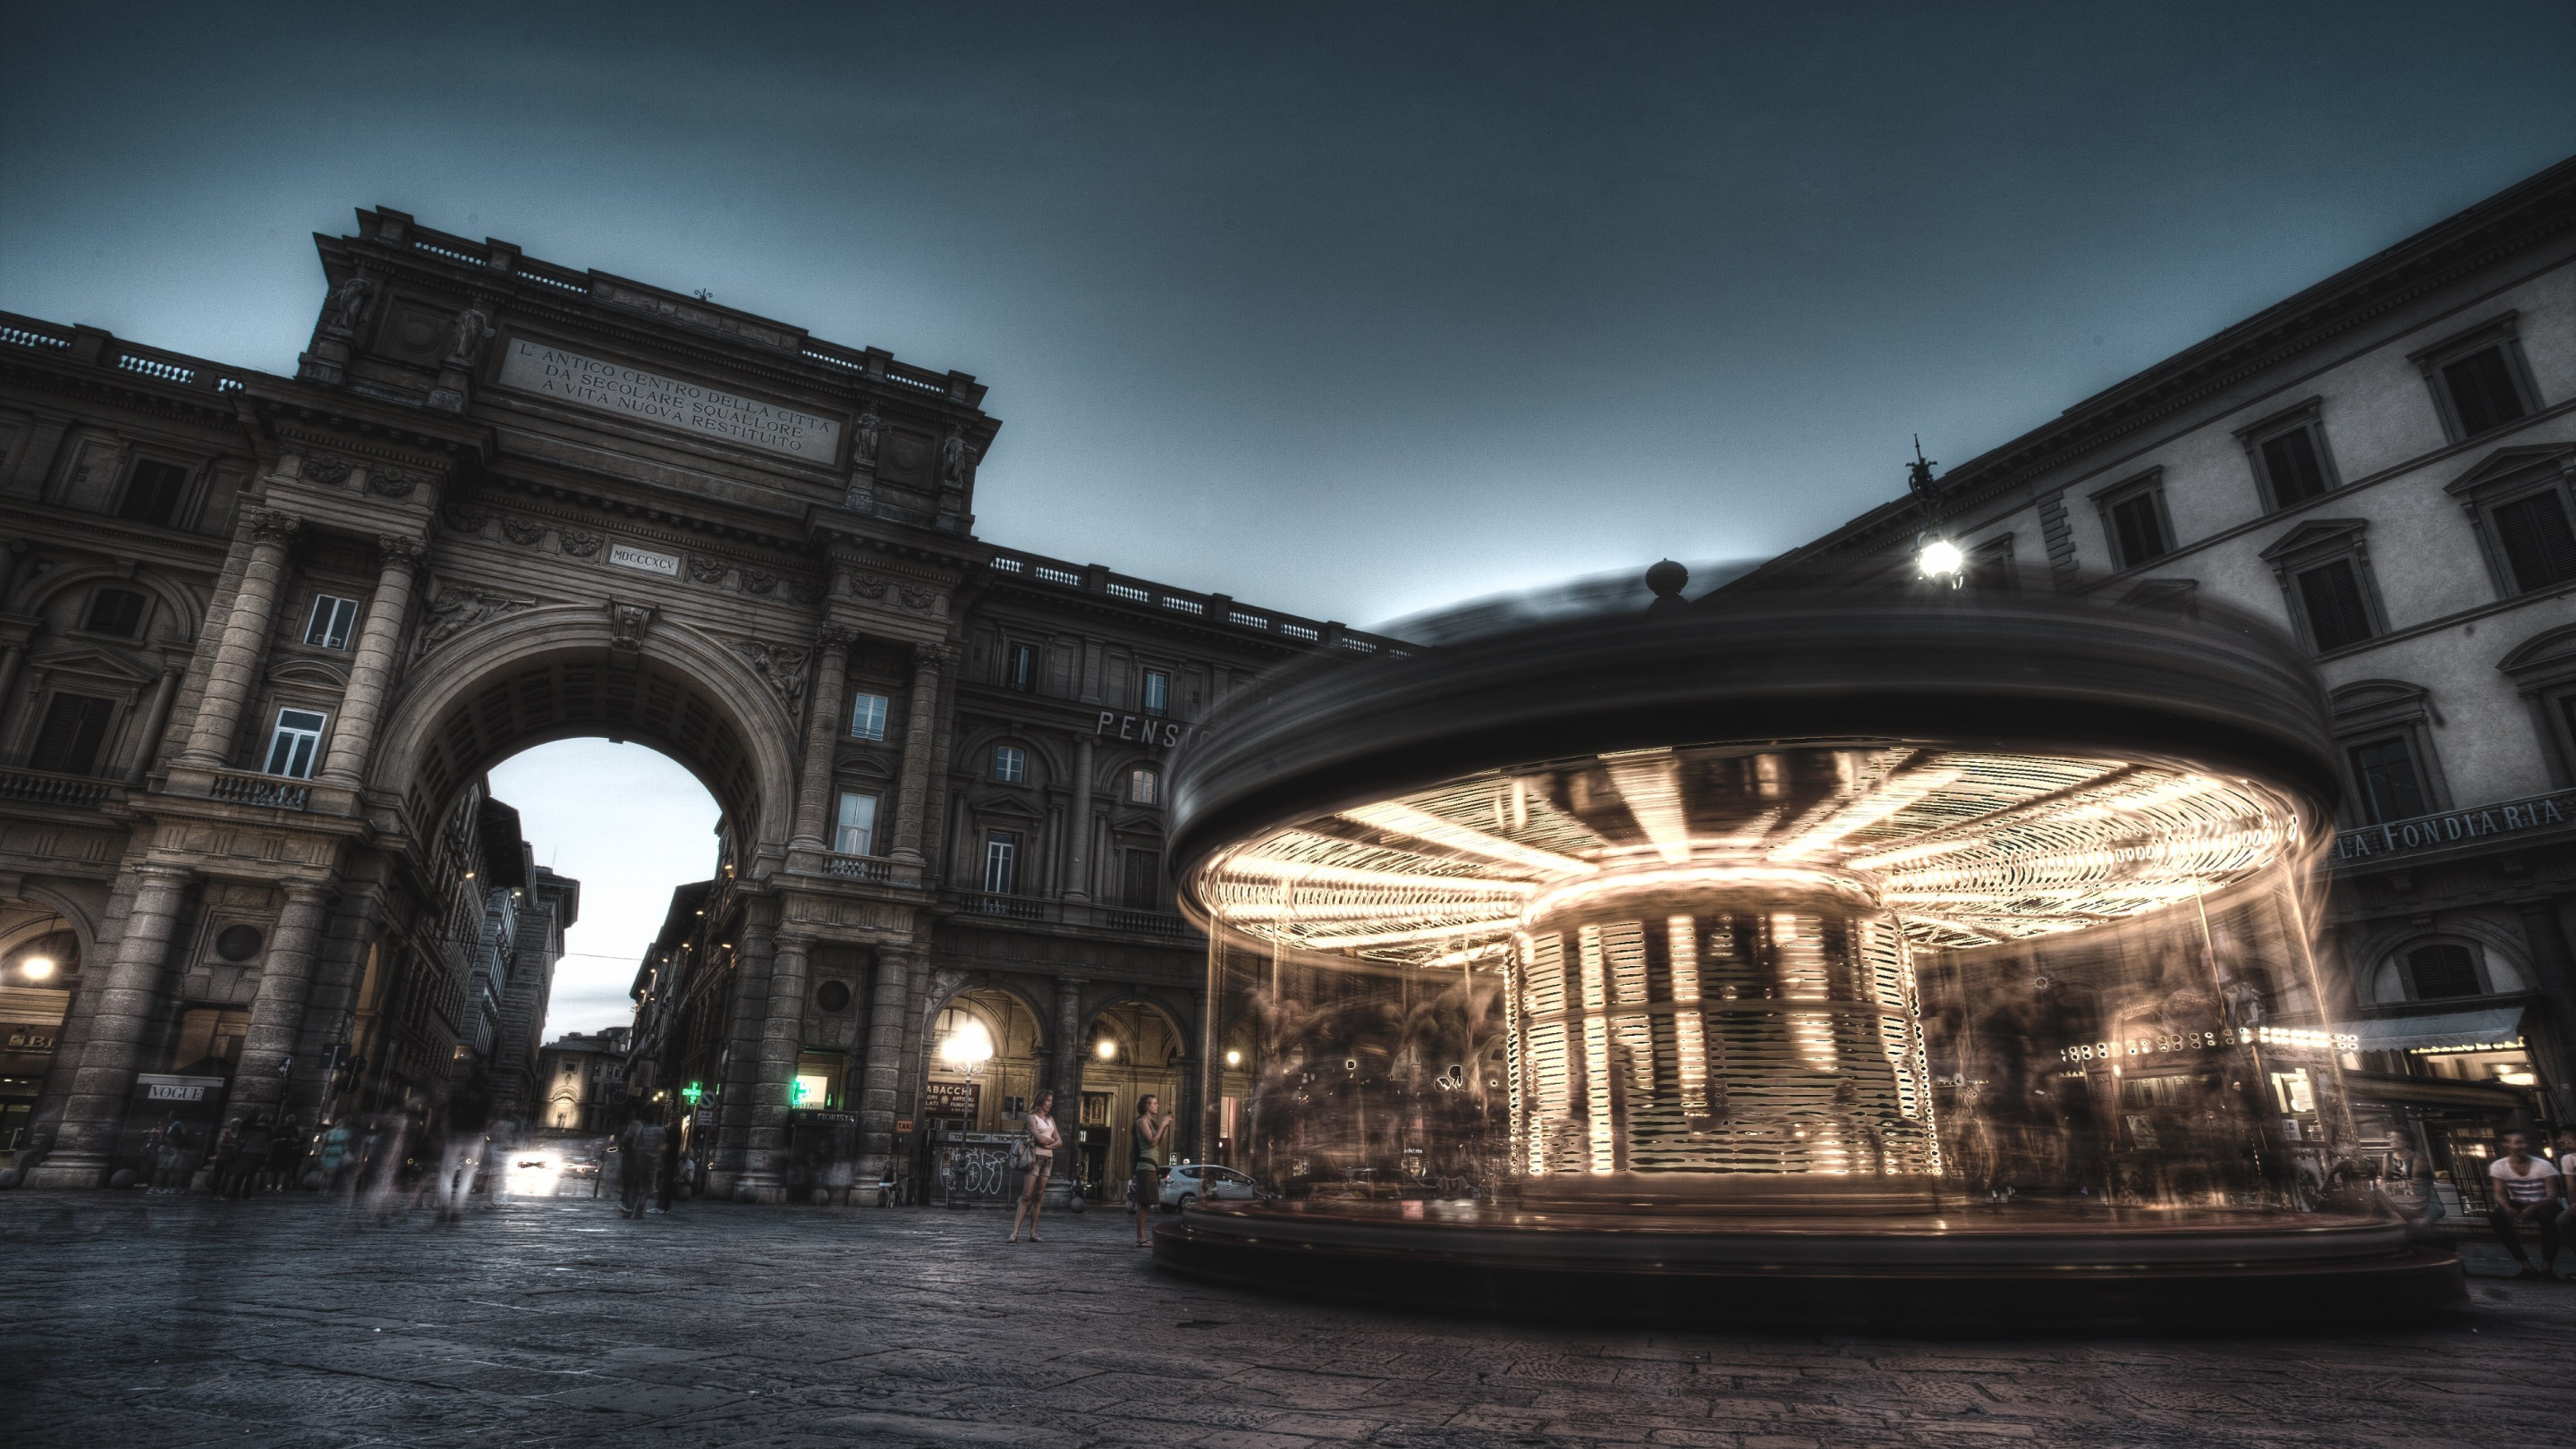 Carousel, people and buildings from Florence | 2880x1620 wallpaper